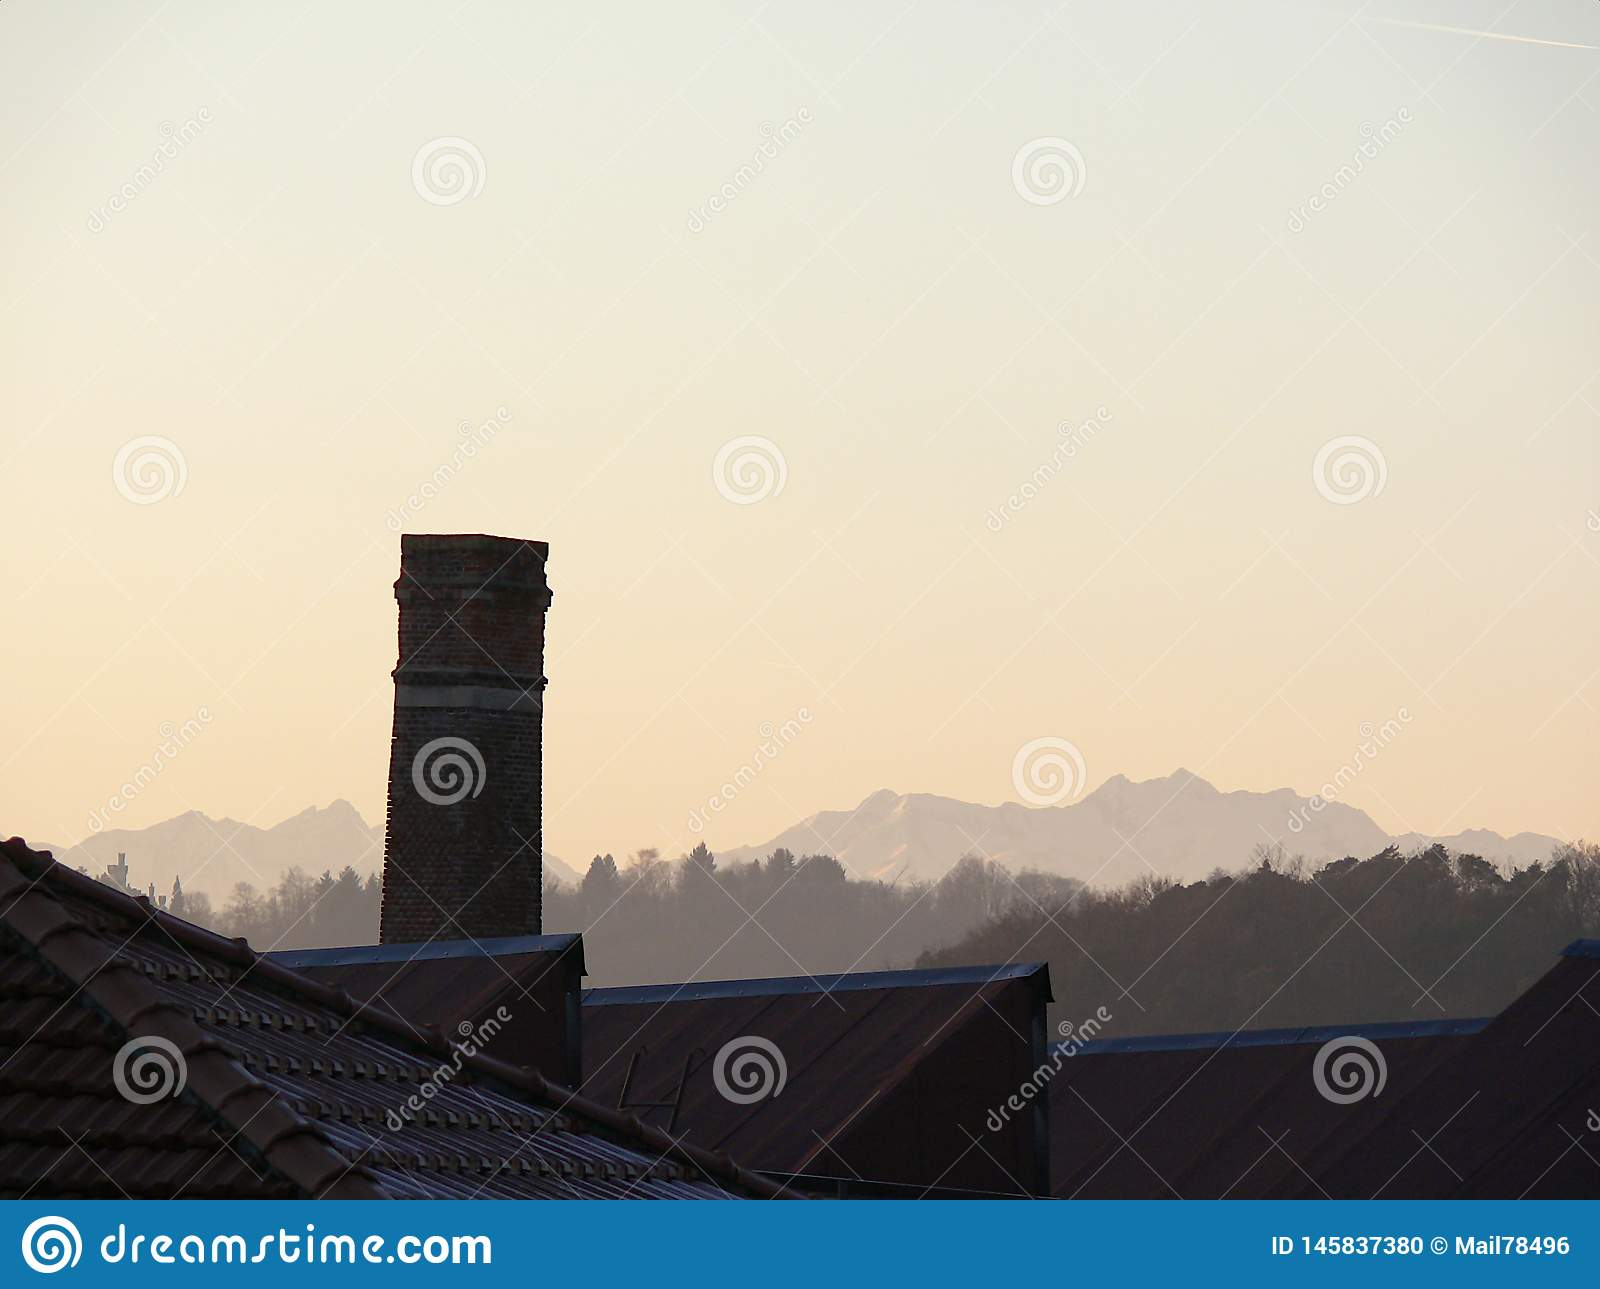 Chimney of old abandoned industrial complex. Work of industrial archaeology. In the background the profile of the mountains Alps